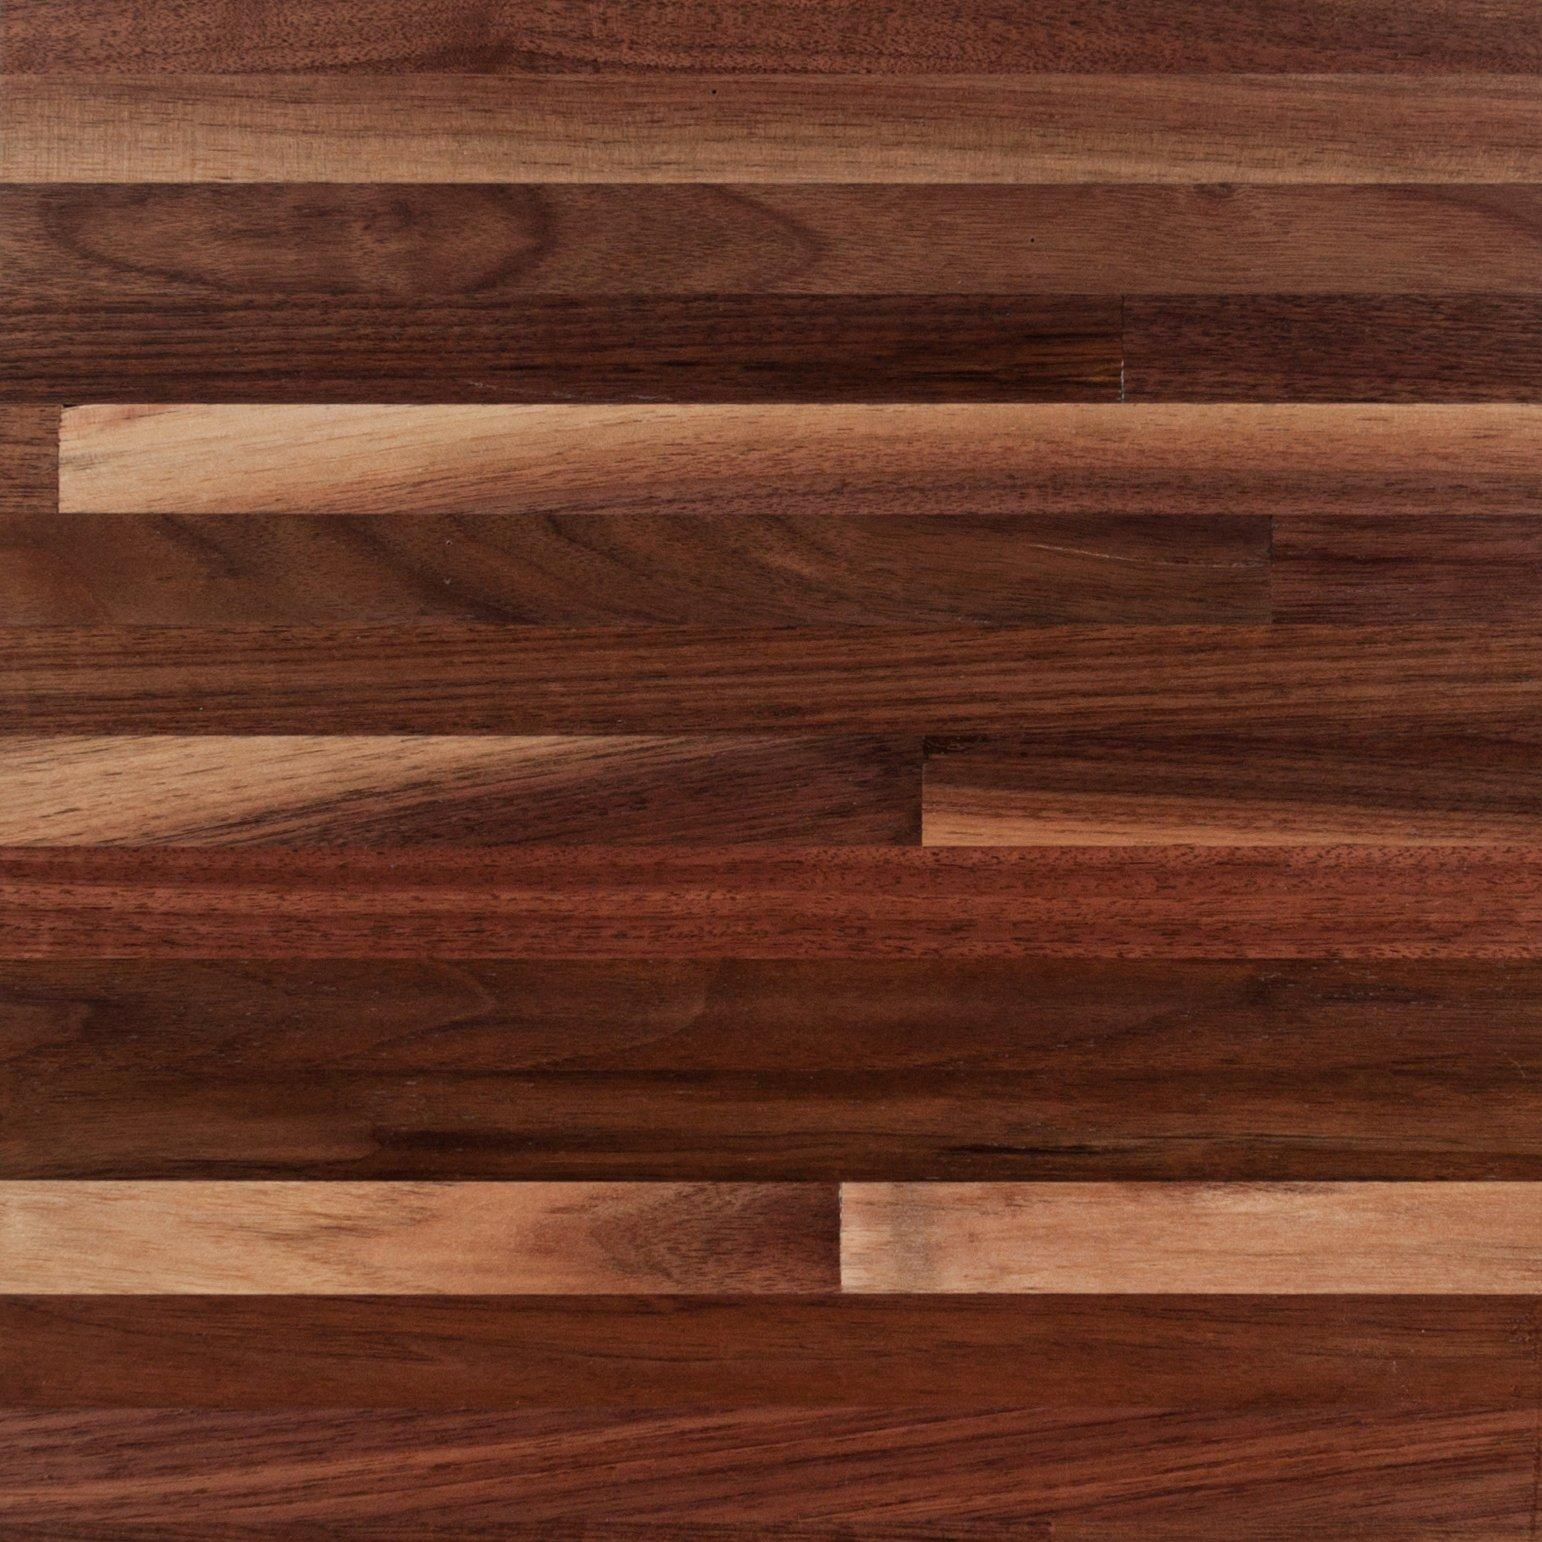 American Walnut Butcher Block Countertop 8ft.   96in. X 25in.   100020676 |  Floor And Decor